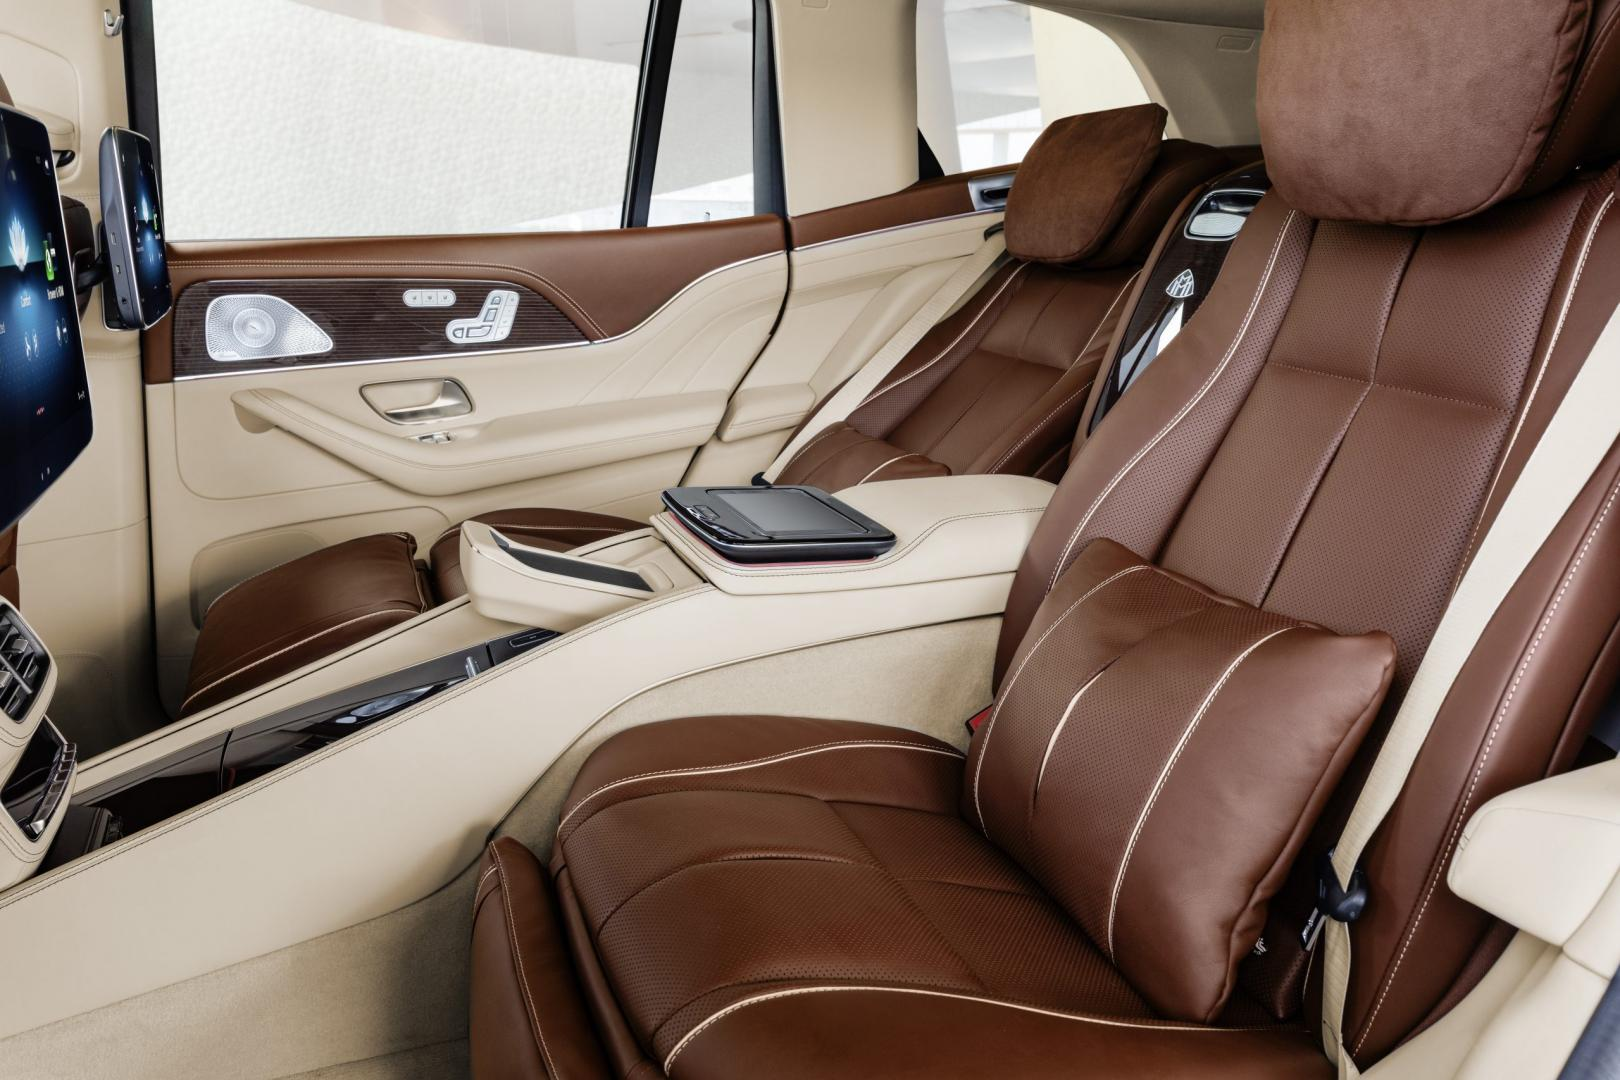 Mercedes-Maybach GLS 600Mercedes-Maybach GLS 600 interieur stoelen